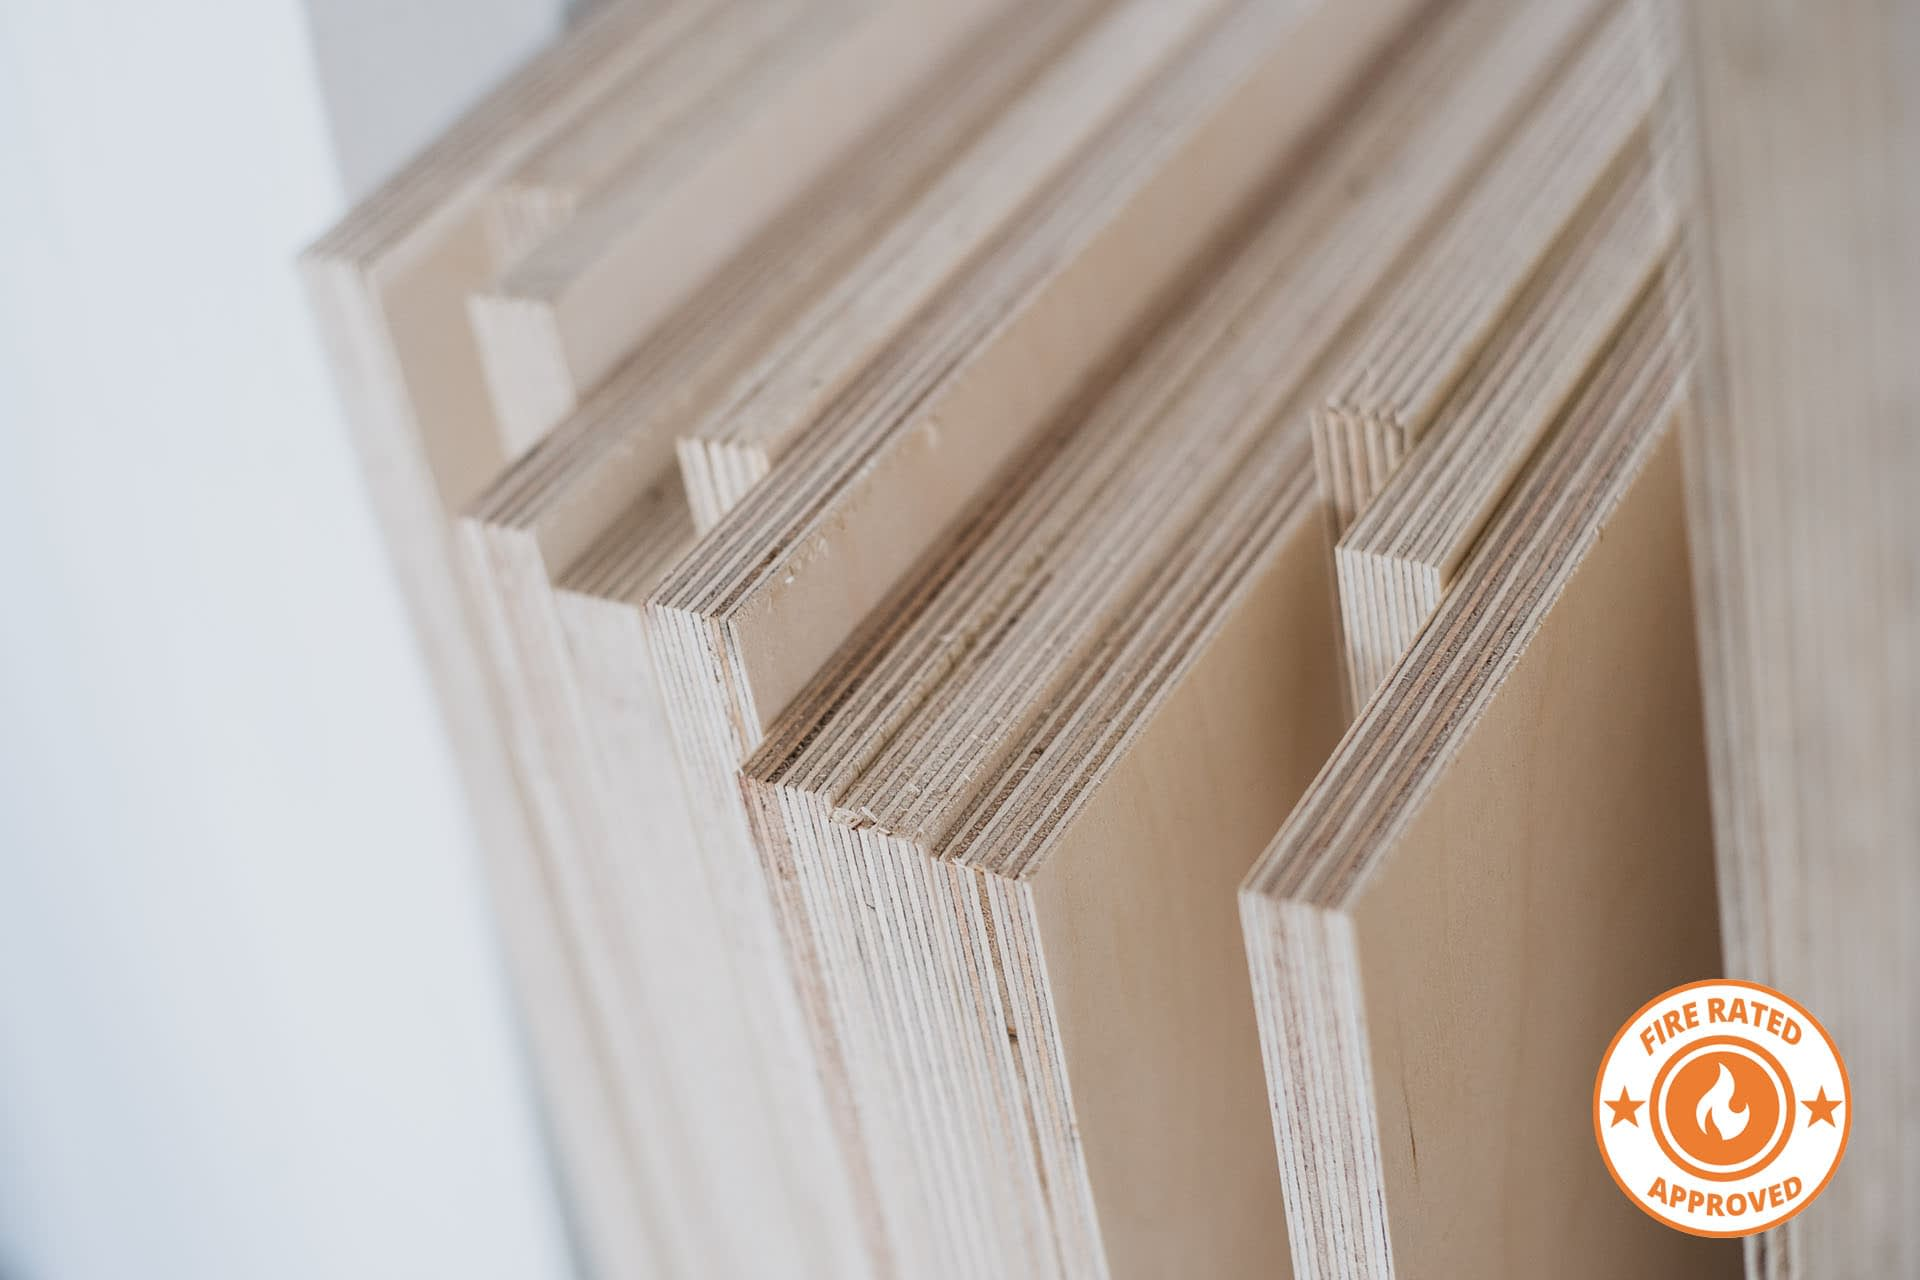 fire-rated-board-plywood-access-panels-kiln-dried